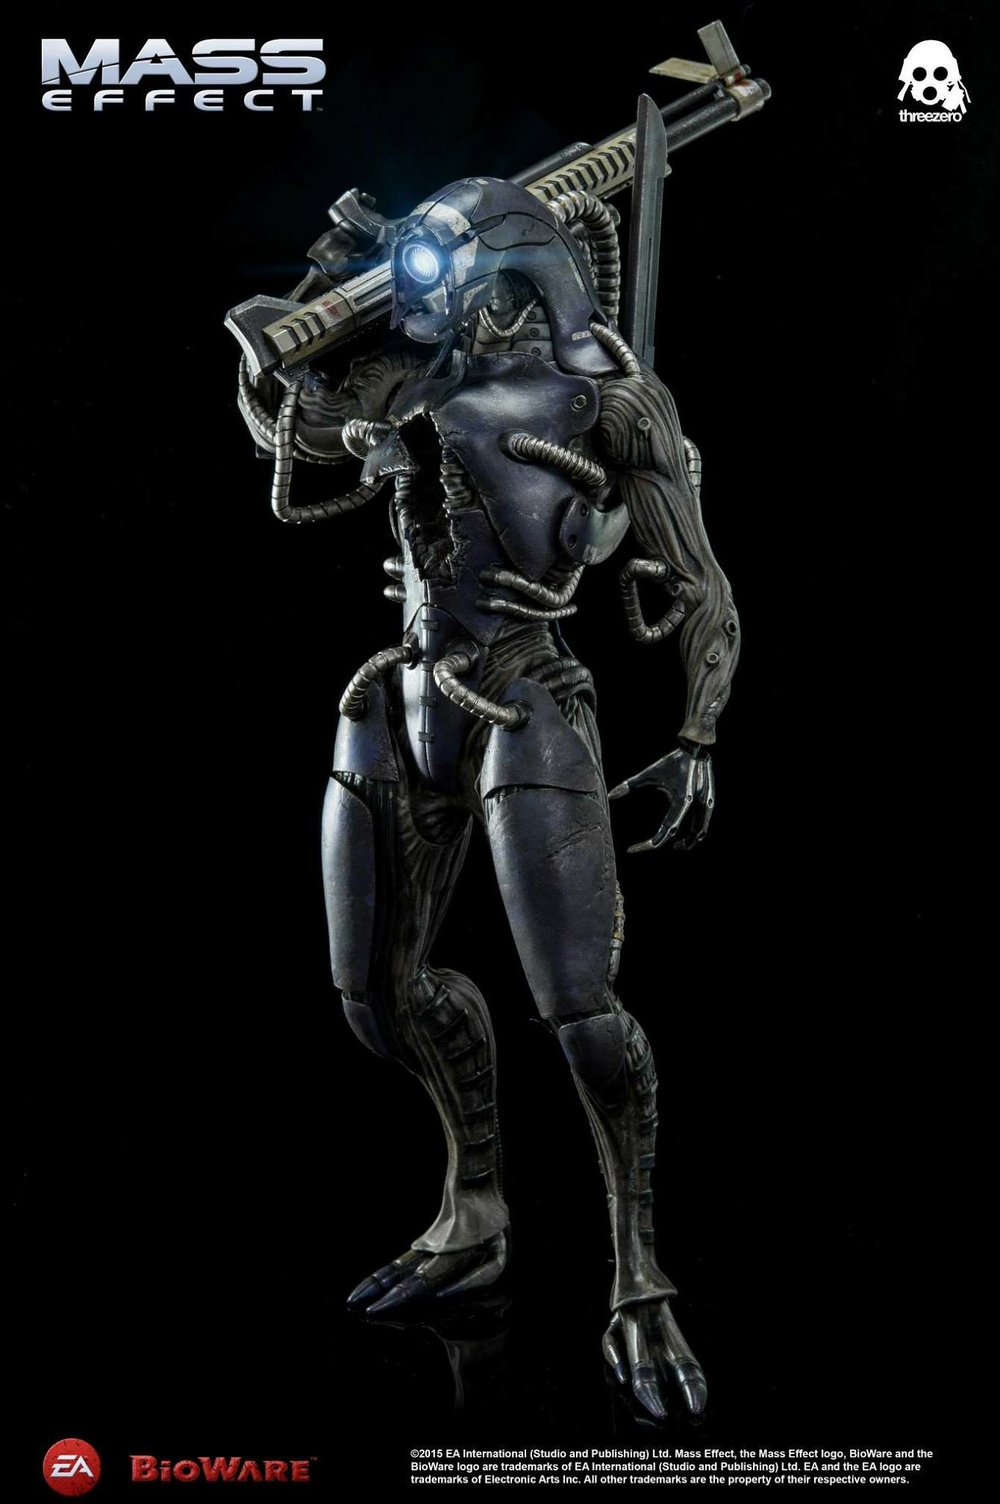 ThreeZero-Bioware-video-game-Legion-Mass-Effect-figure-3_1340_c.jpg